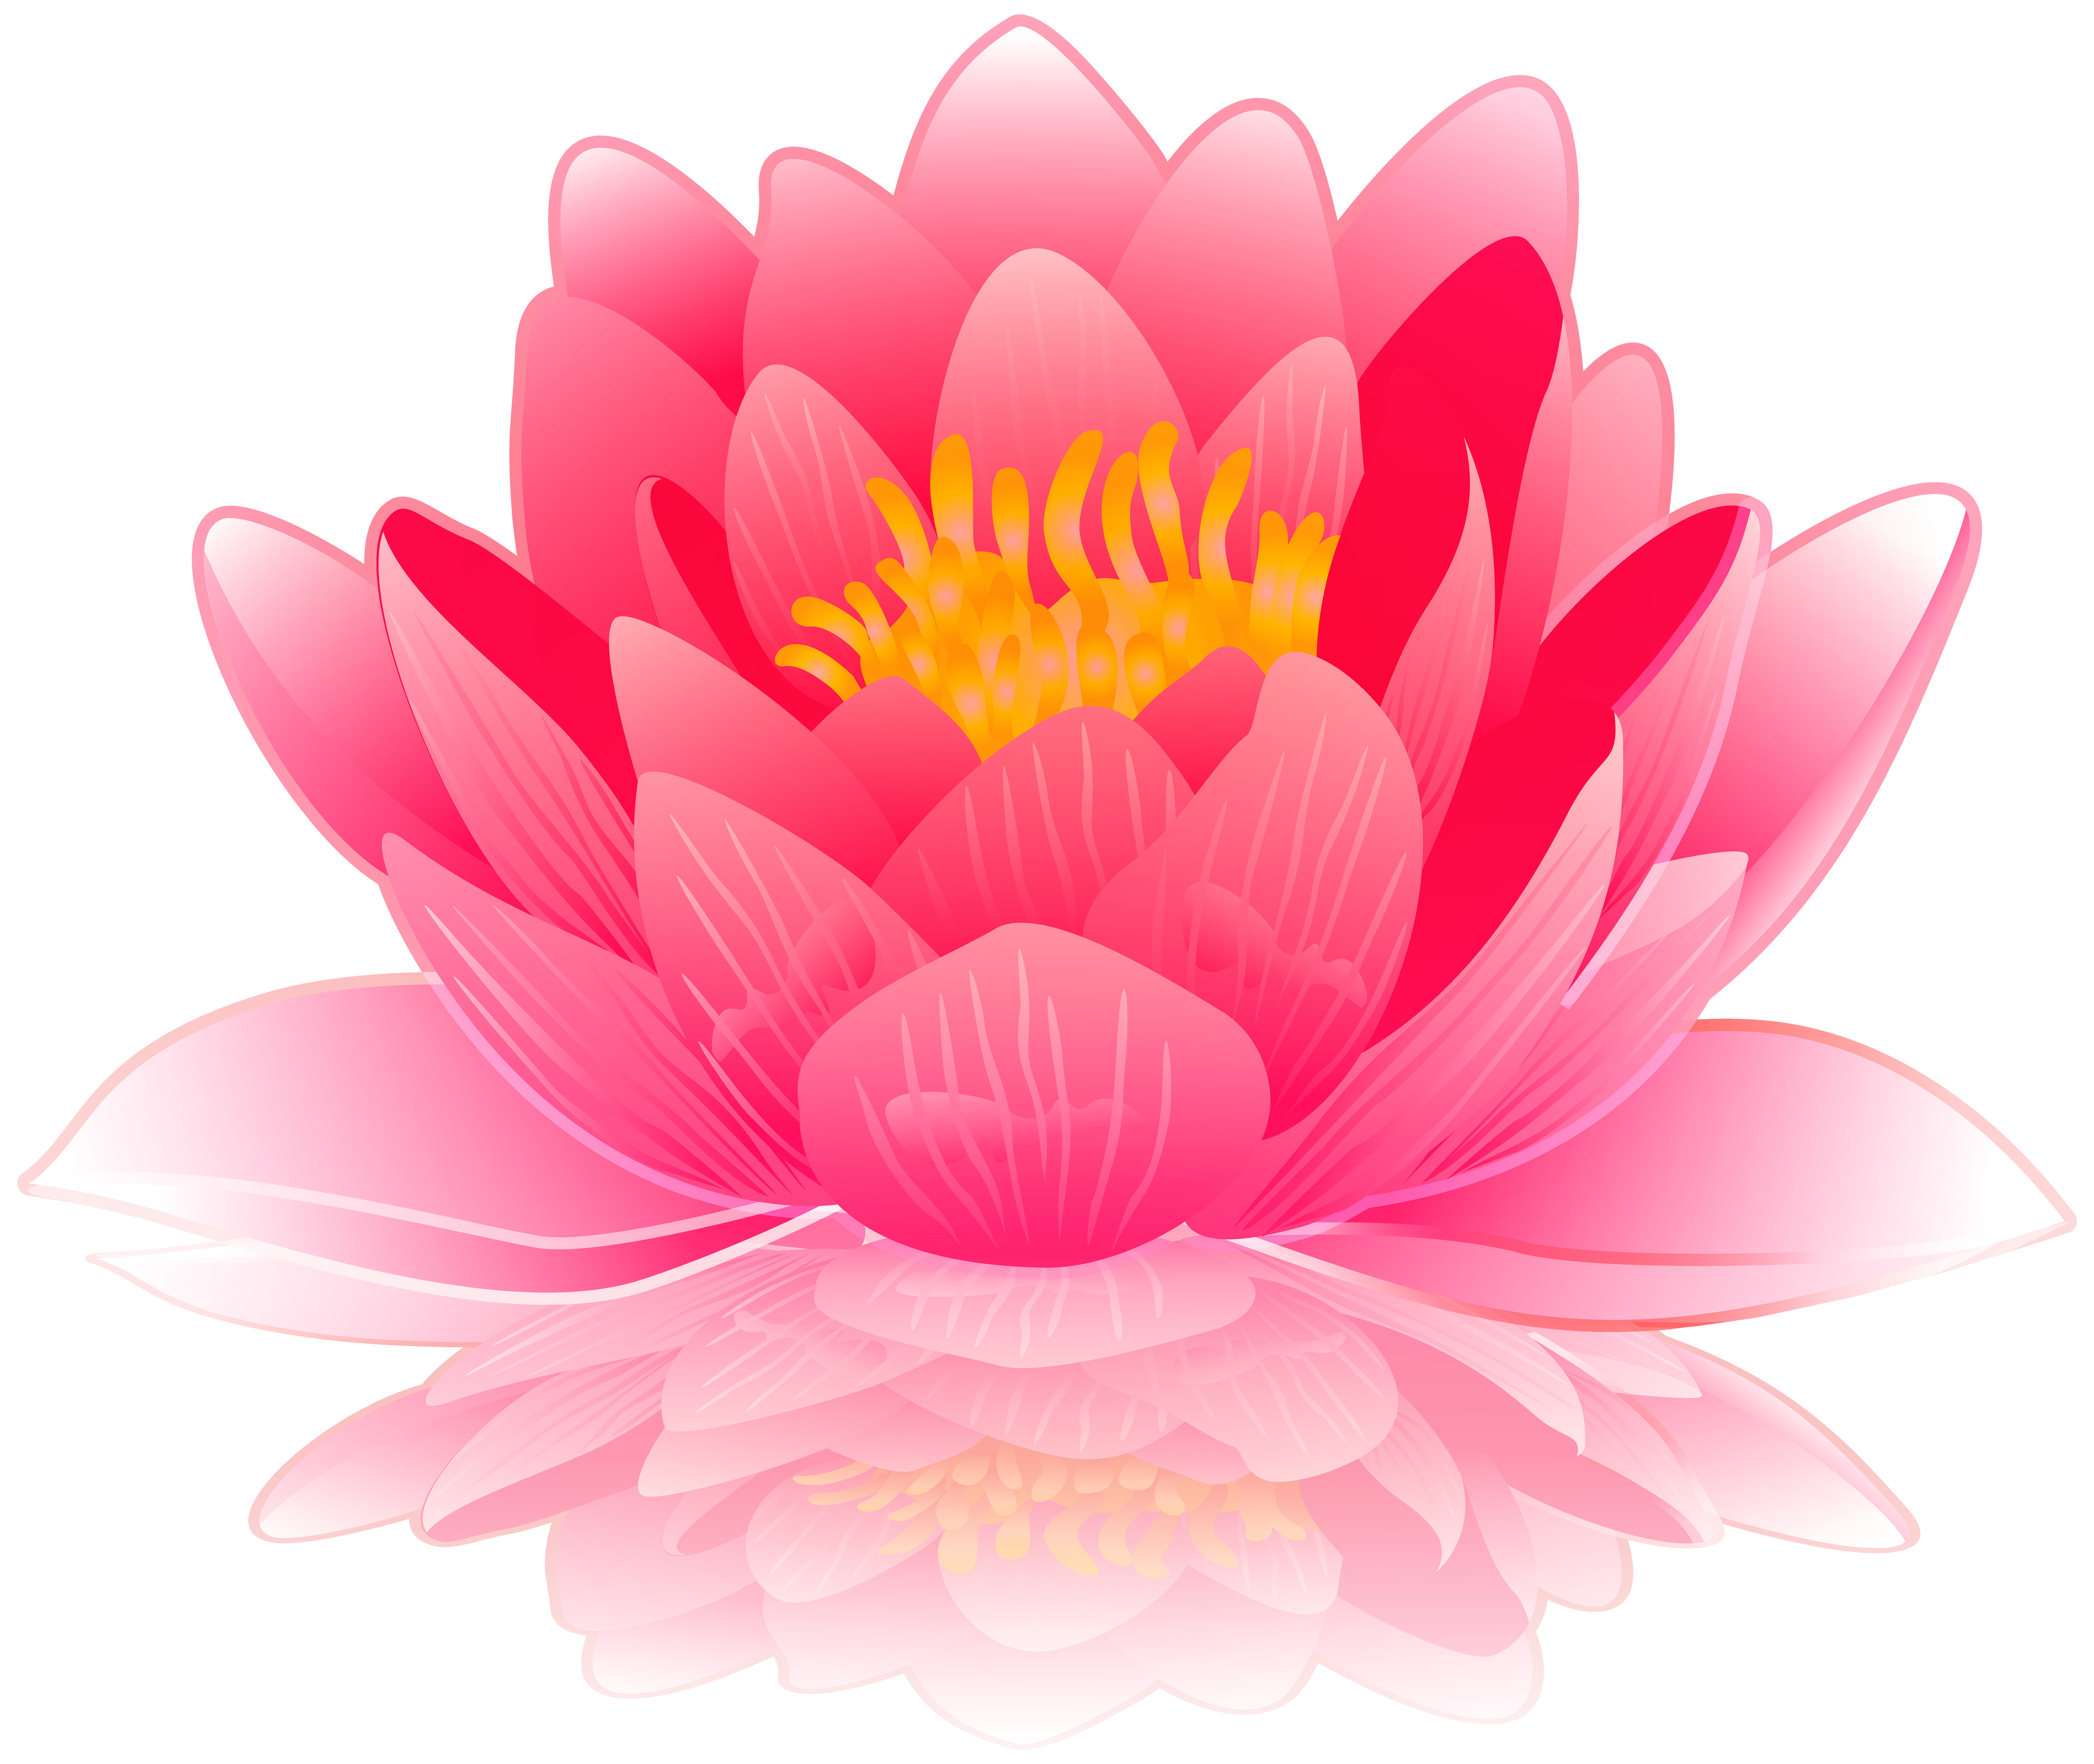 Water lily flower clipart black and white download Pink Water Lily PNG Clip Art Image | Gallery Yopriceville - High ... black and white download